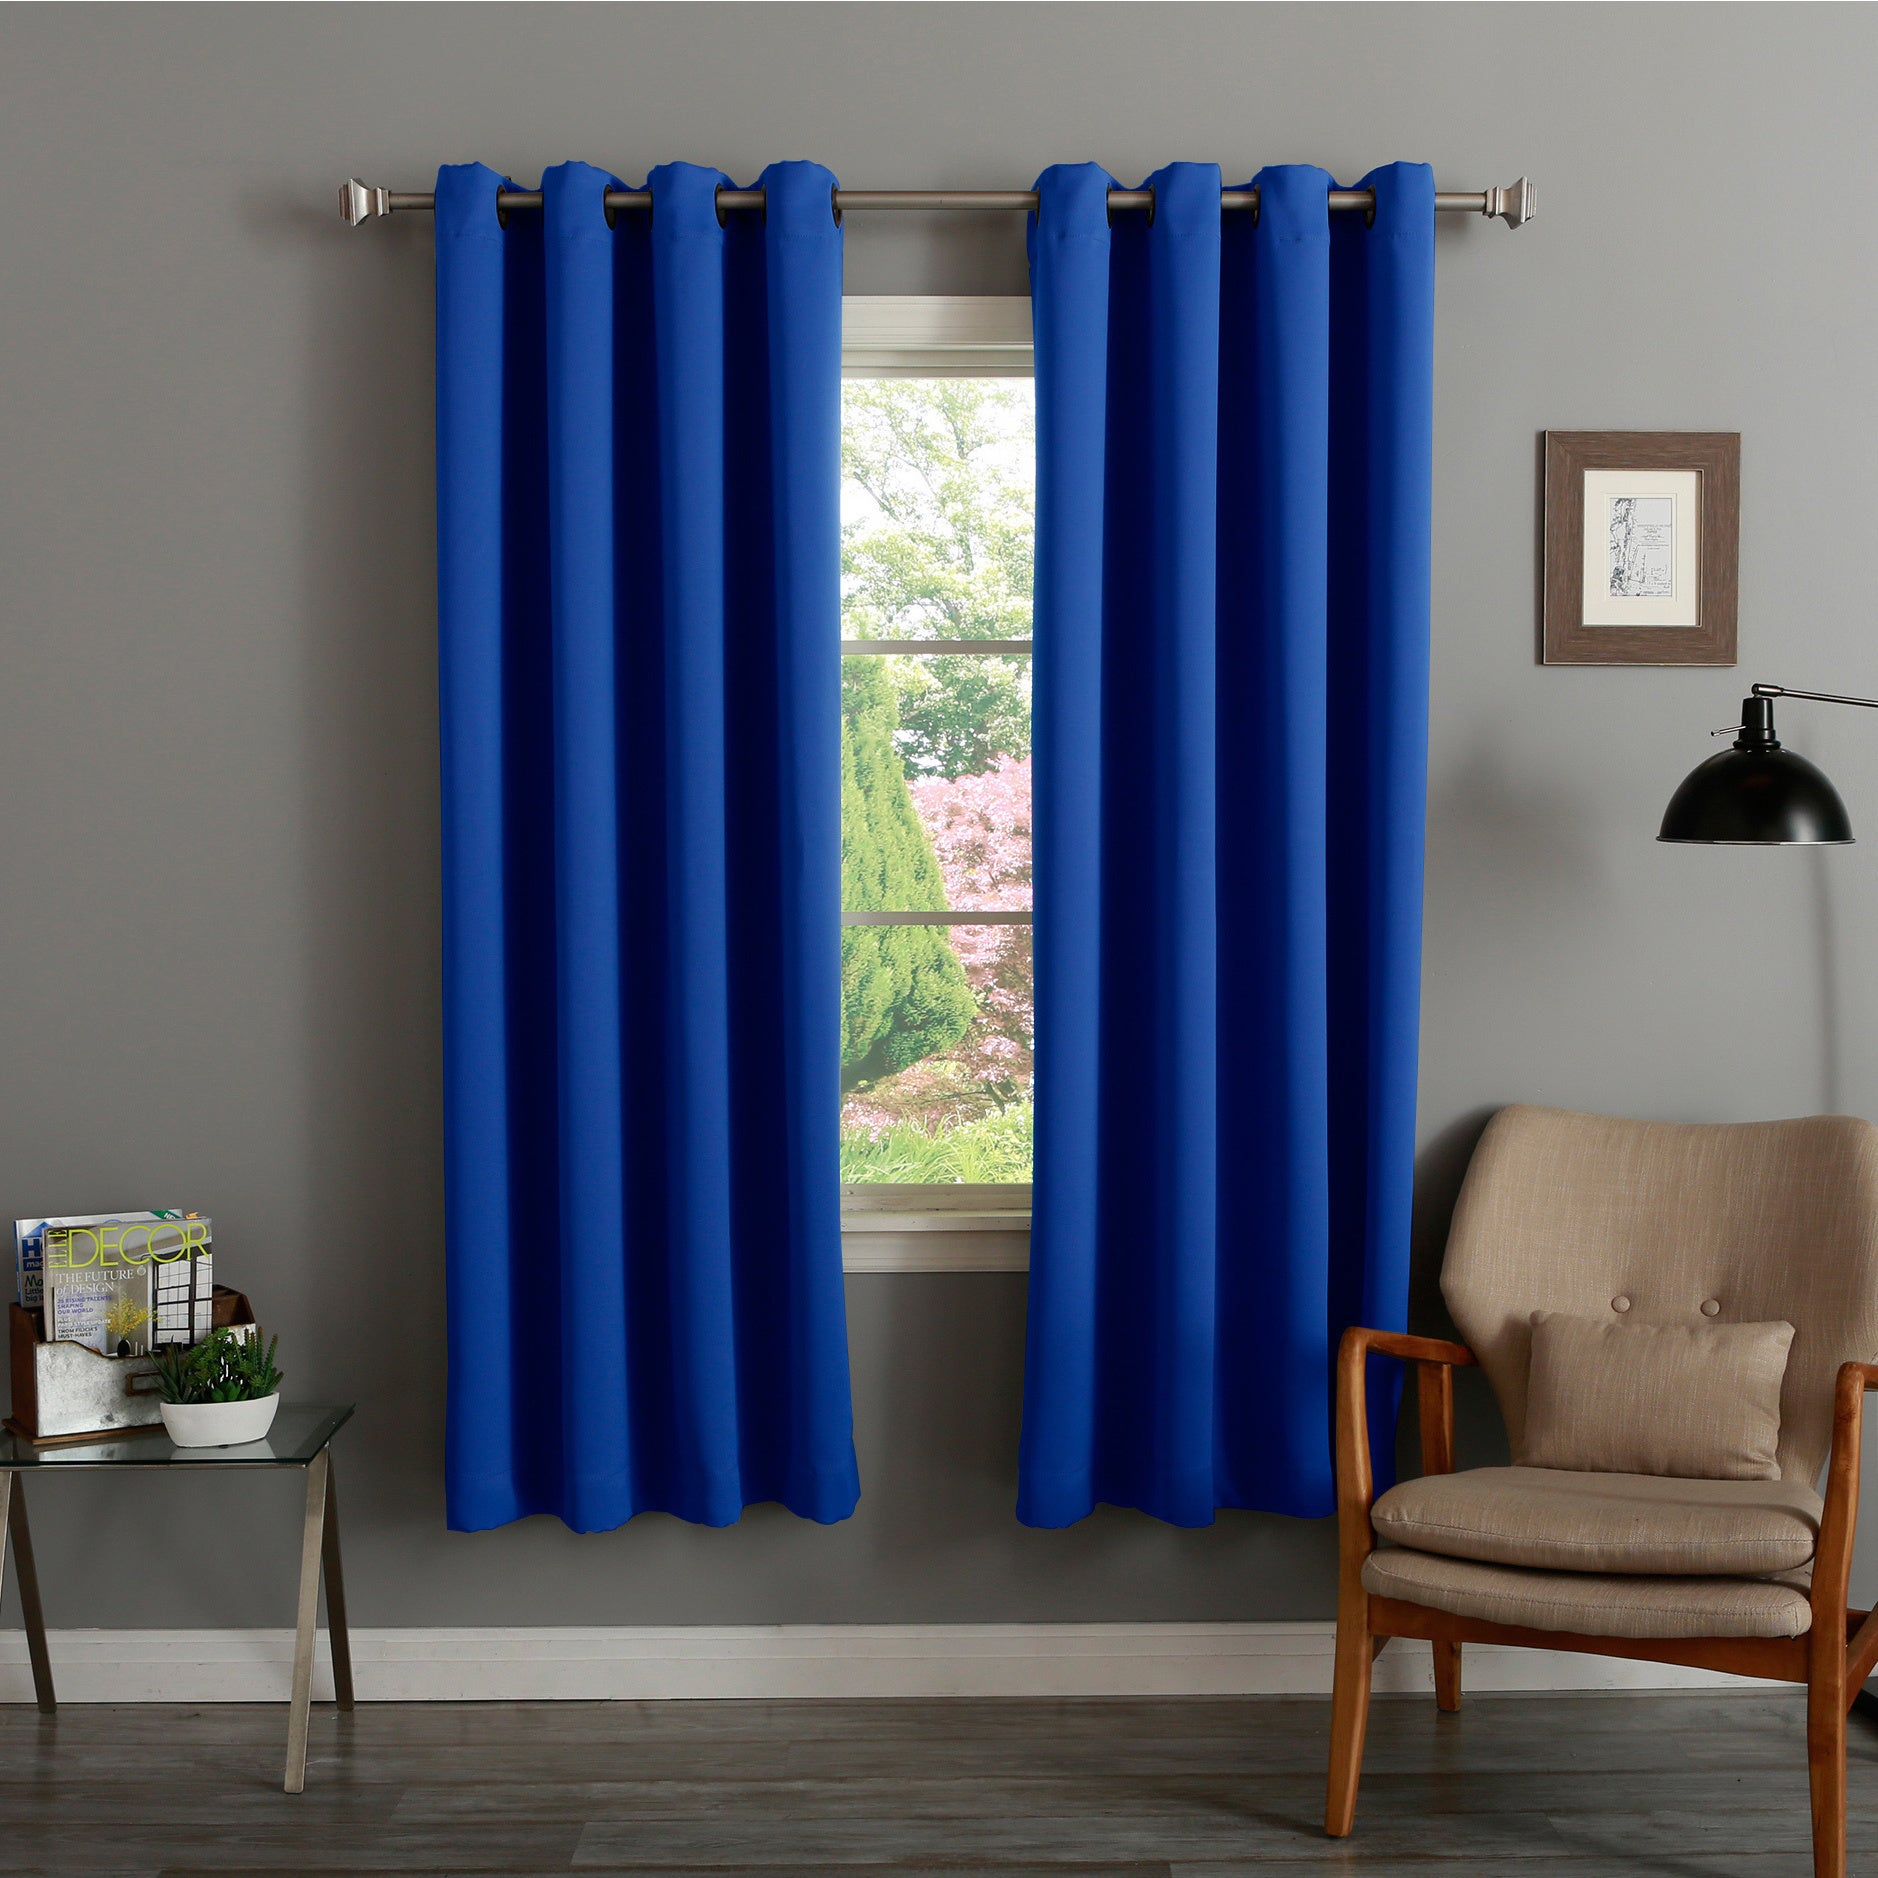 Aurora Home Thermal Insulated 72 Inch Blackout Curtain Pair – 52 X 72 With Regard To Thermal Insulated Blackout Curtain Pairs (View 10 of 30)